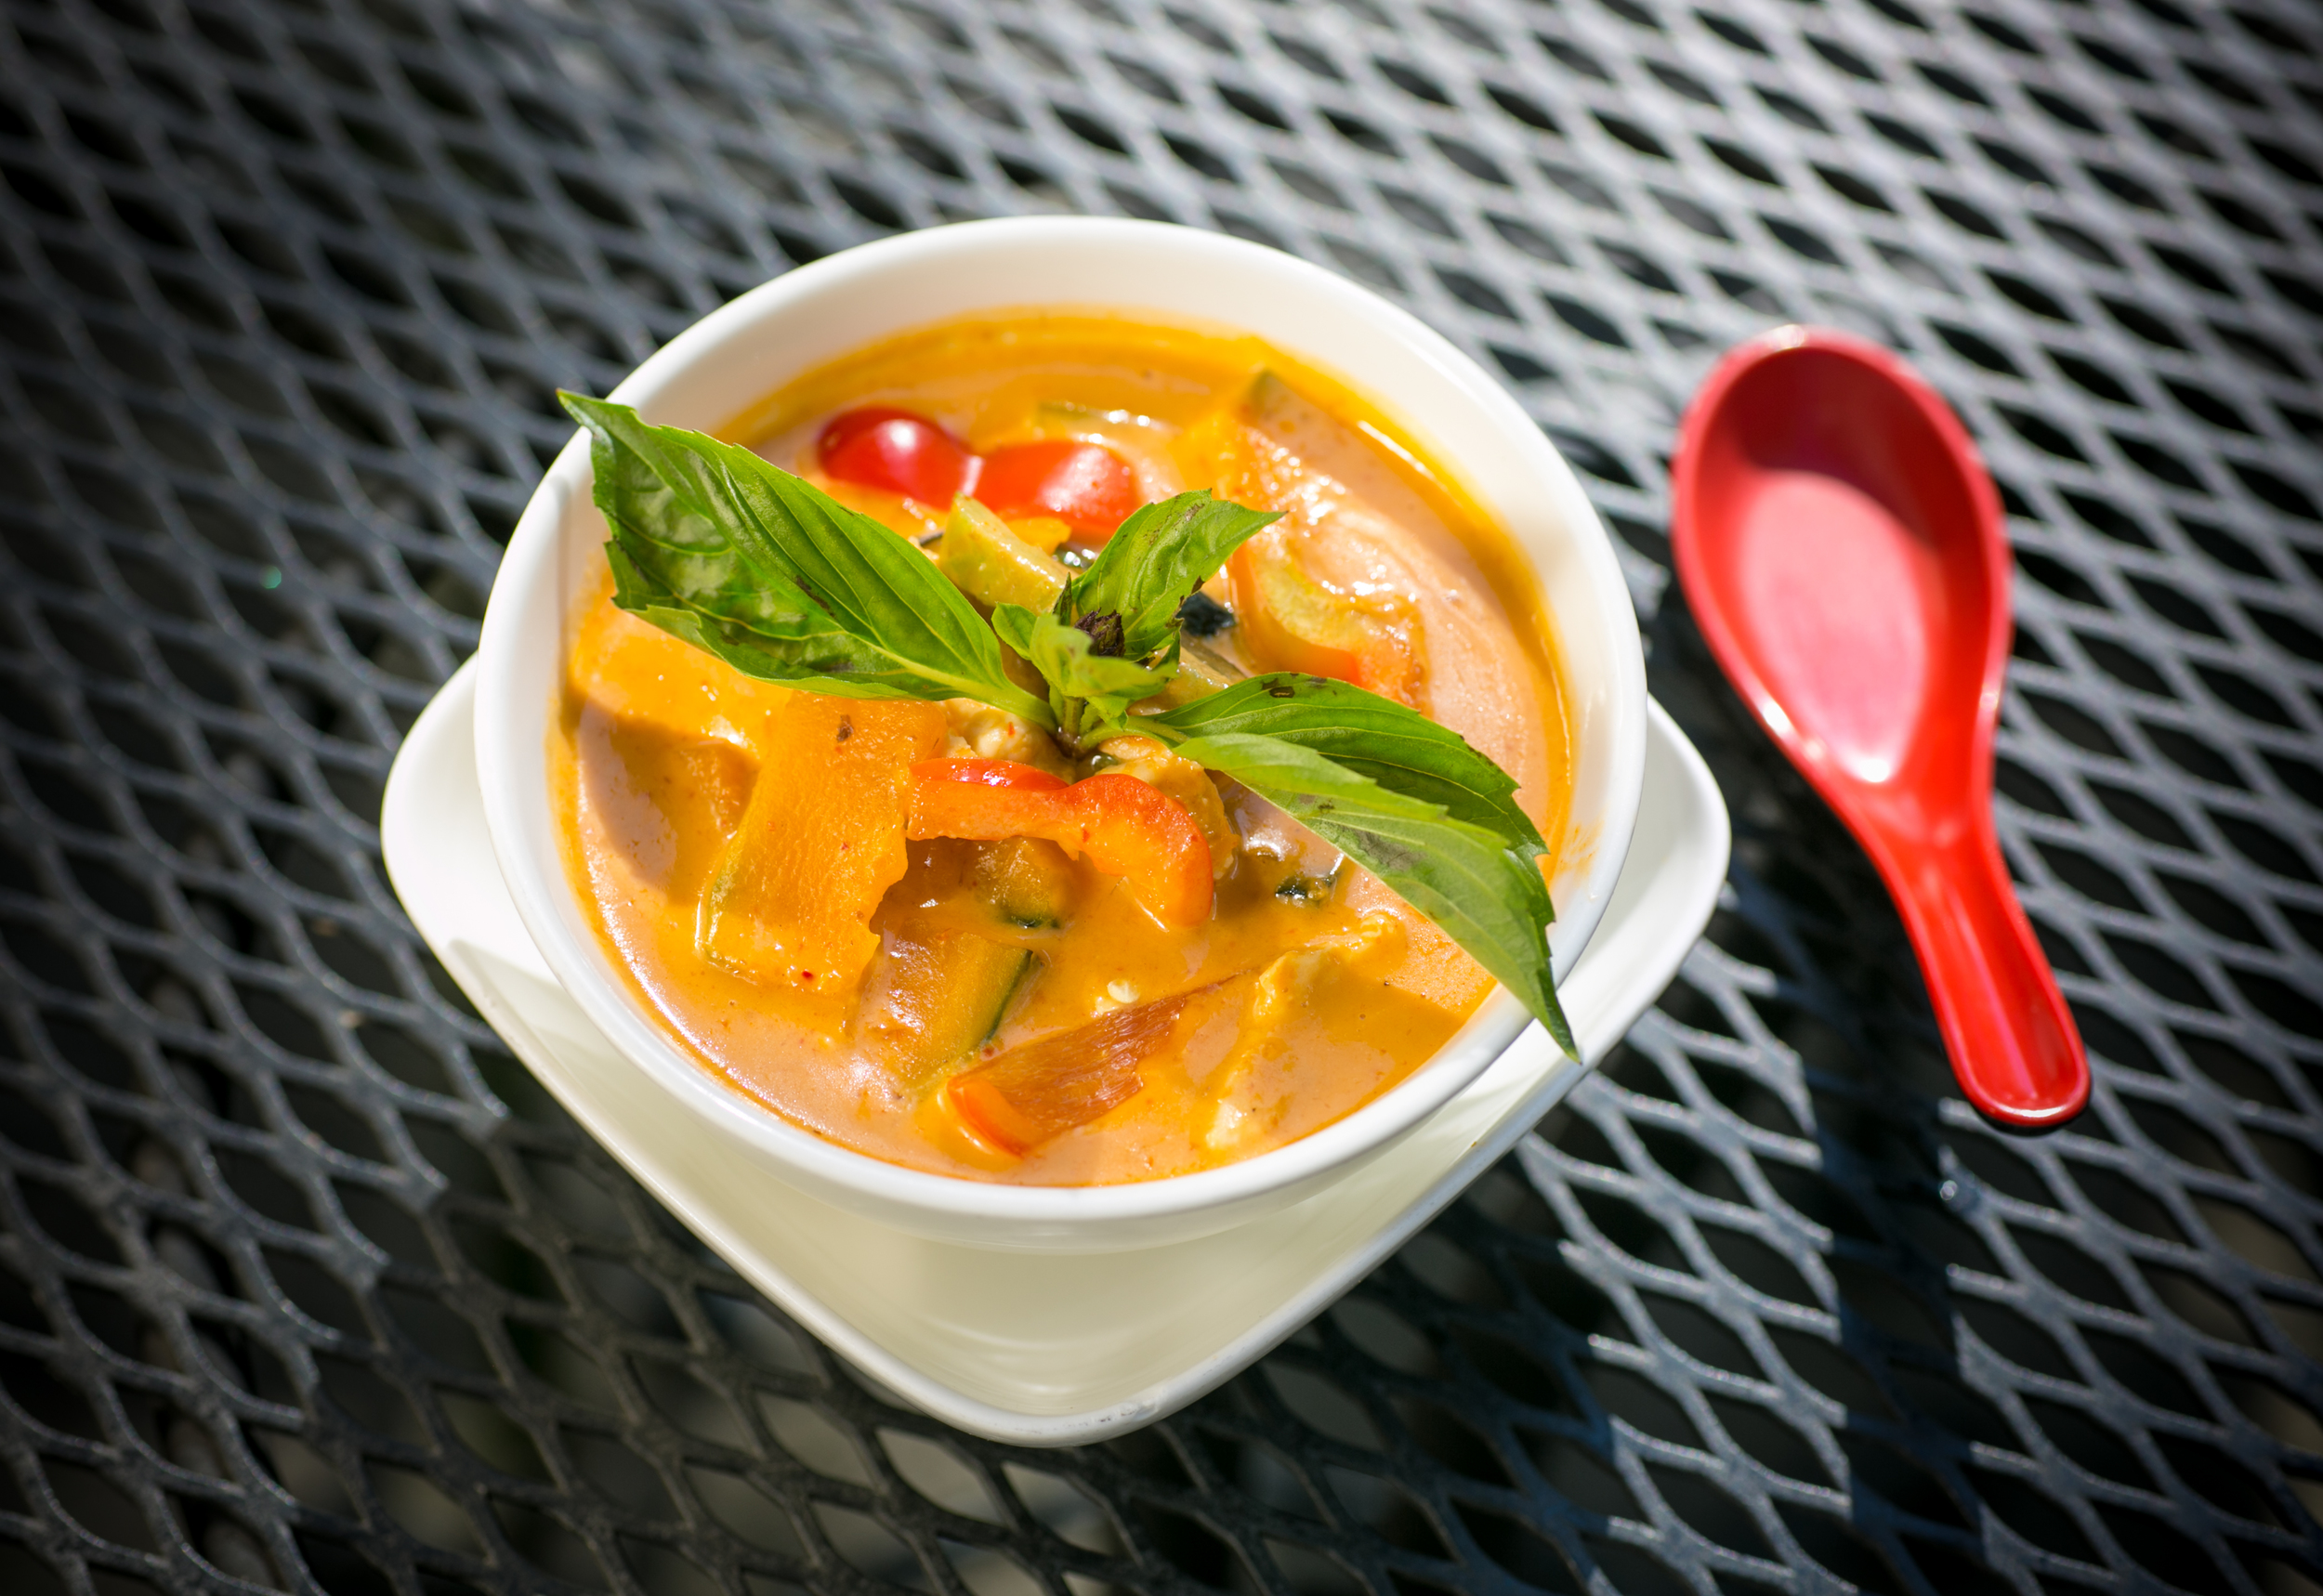 RED CURRY: